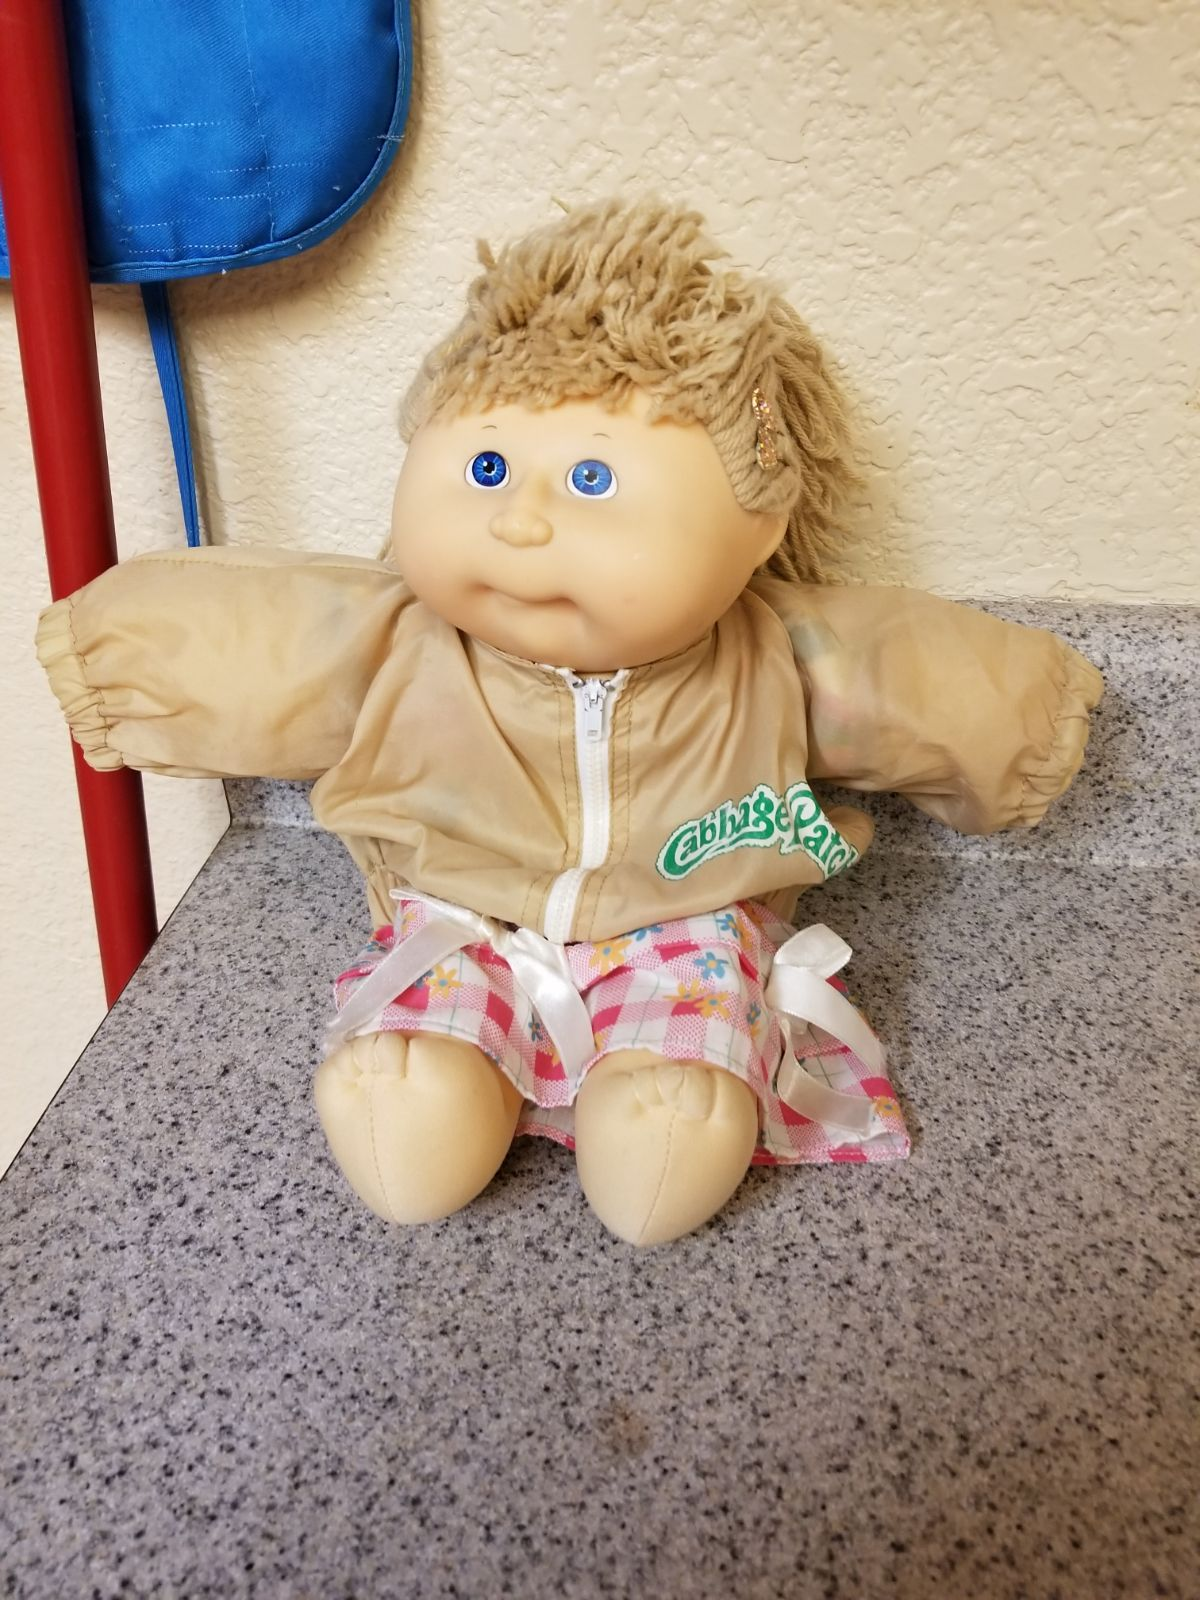 Cabbage Patch Doll With Jacket From 1988 Condition Is Used Looks Brand New Cabbage Patch Kids Dolls Cabbage Patch Babies Cabbage Patch Dolls